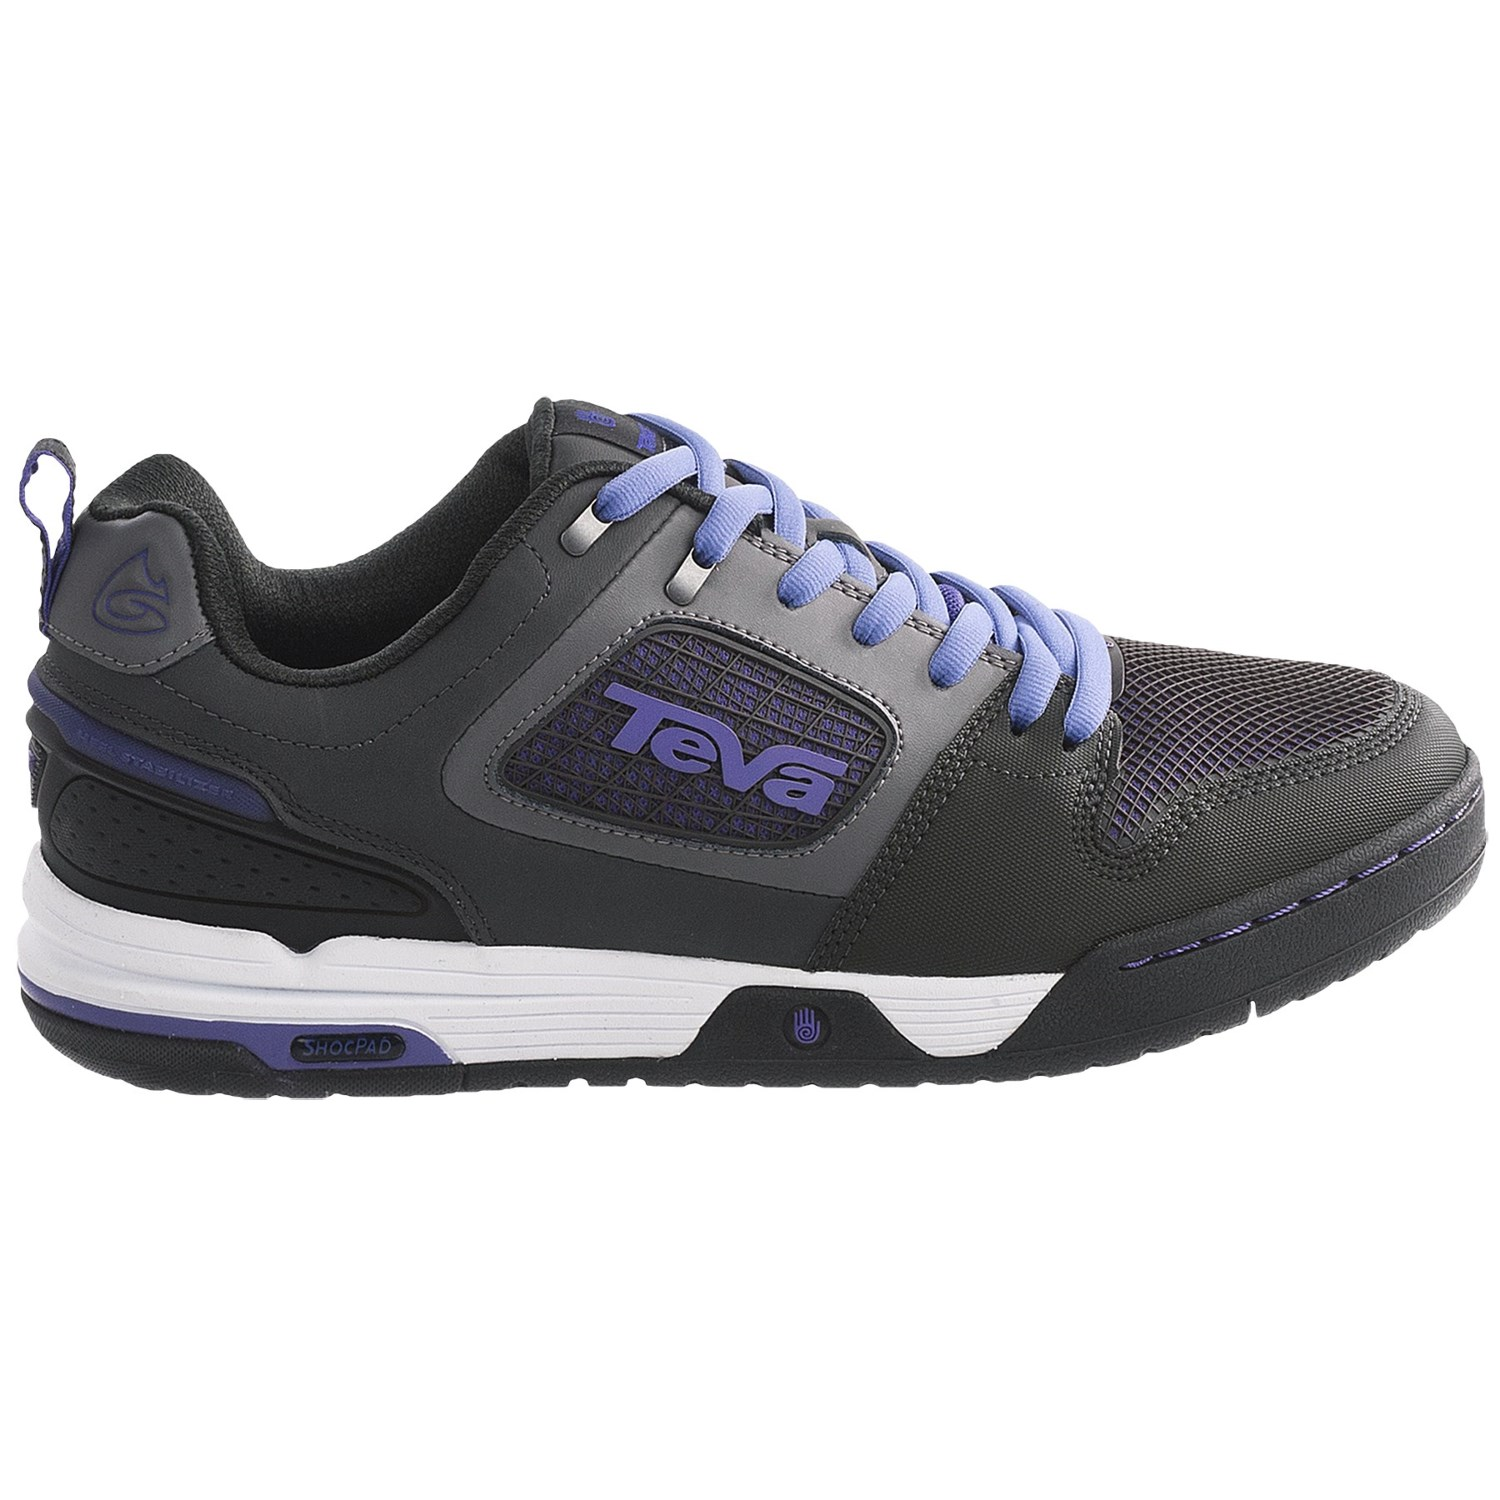 teva links shoes for and 6869u save 86